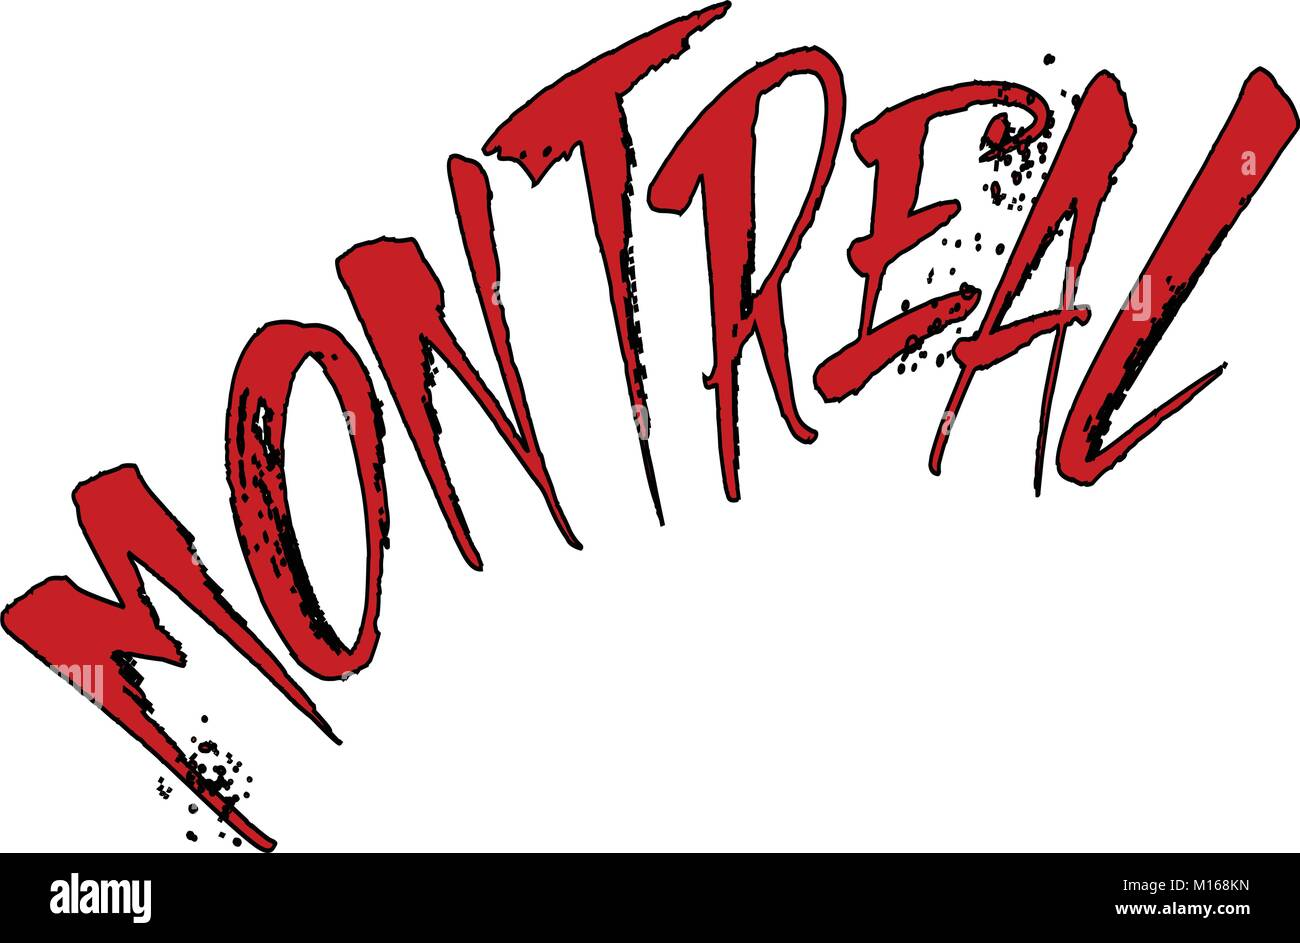 Montreal text sign illustration on white Background - Stock Image